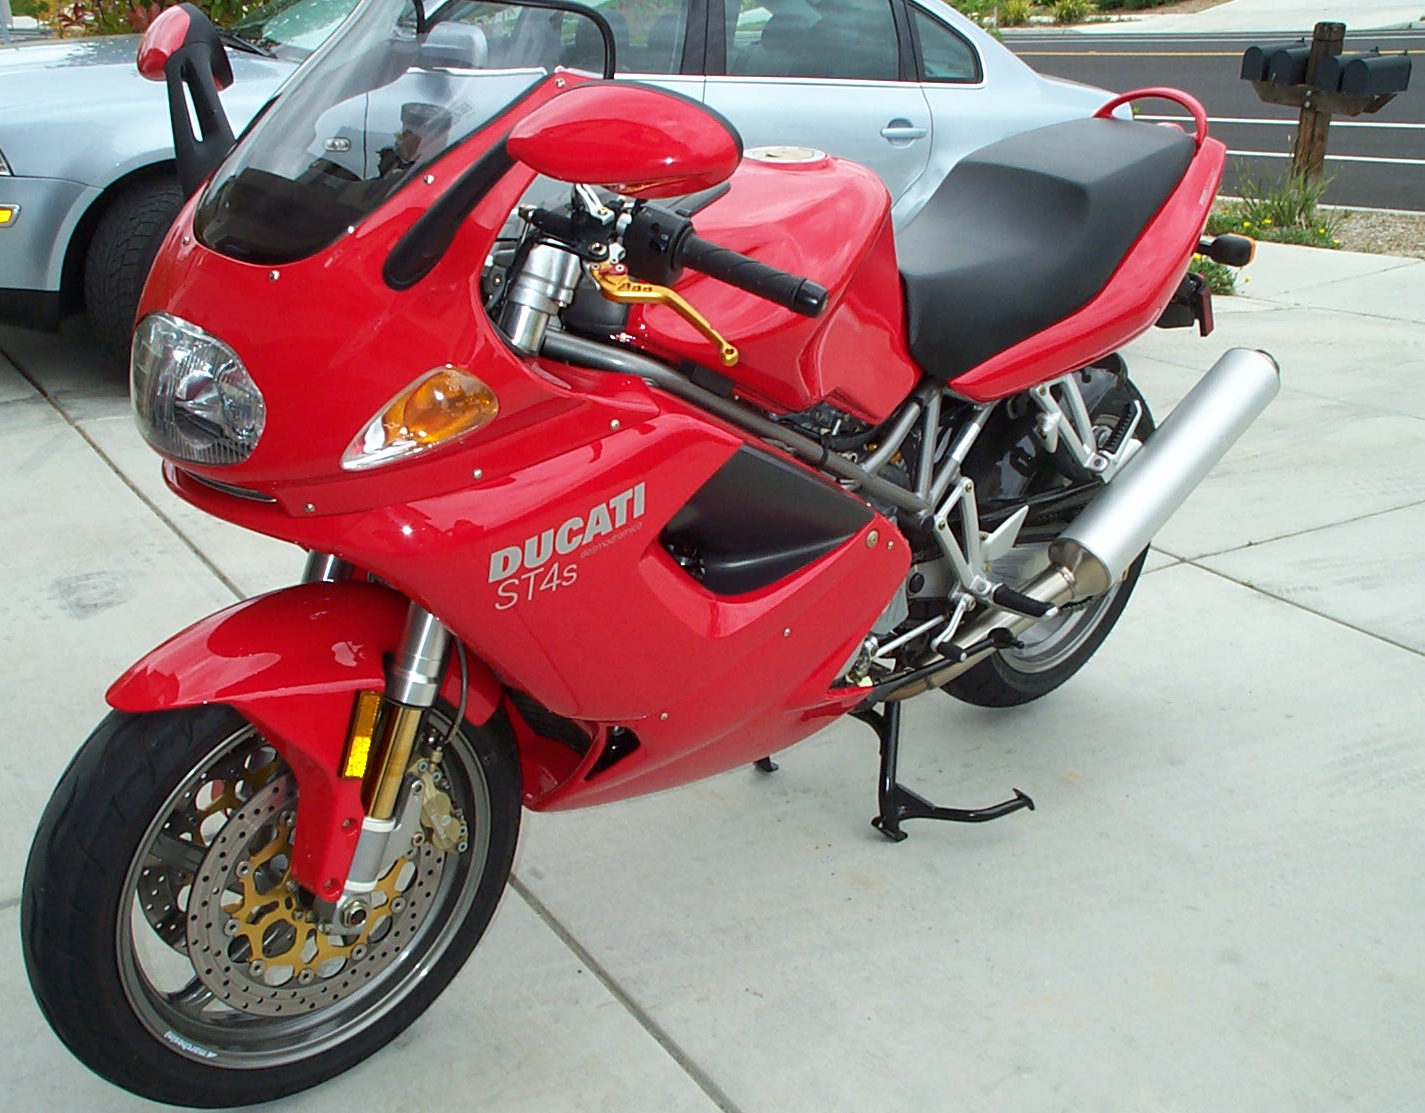 Ducati ST4 S 2005 wallpapers #11594